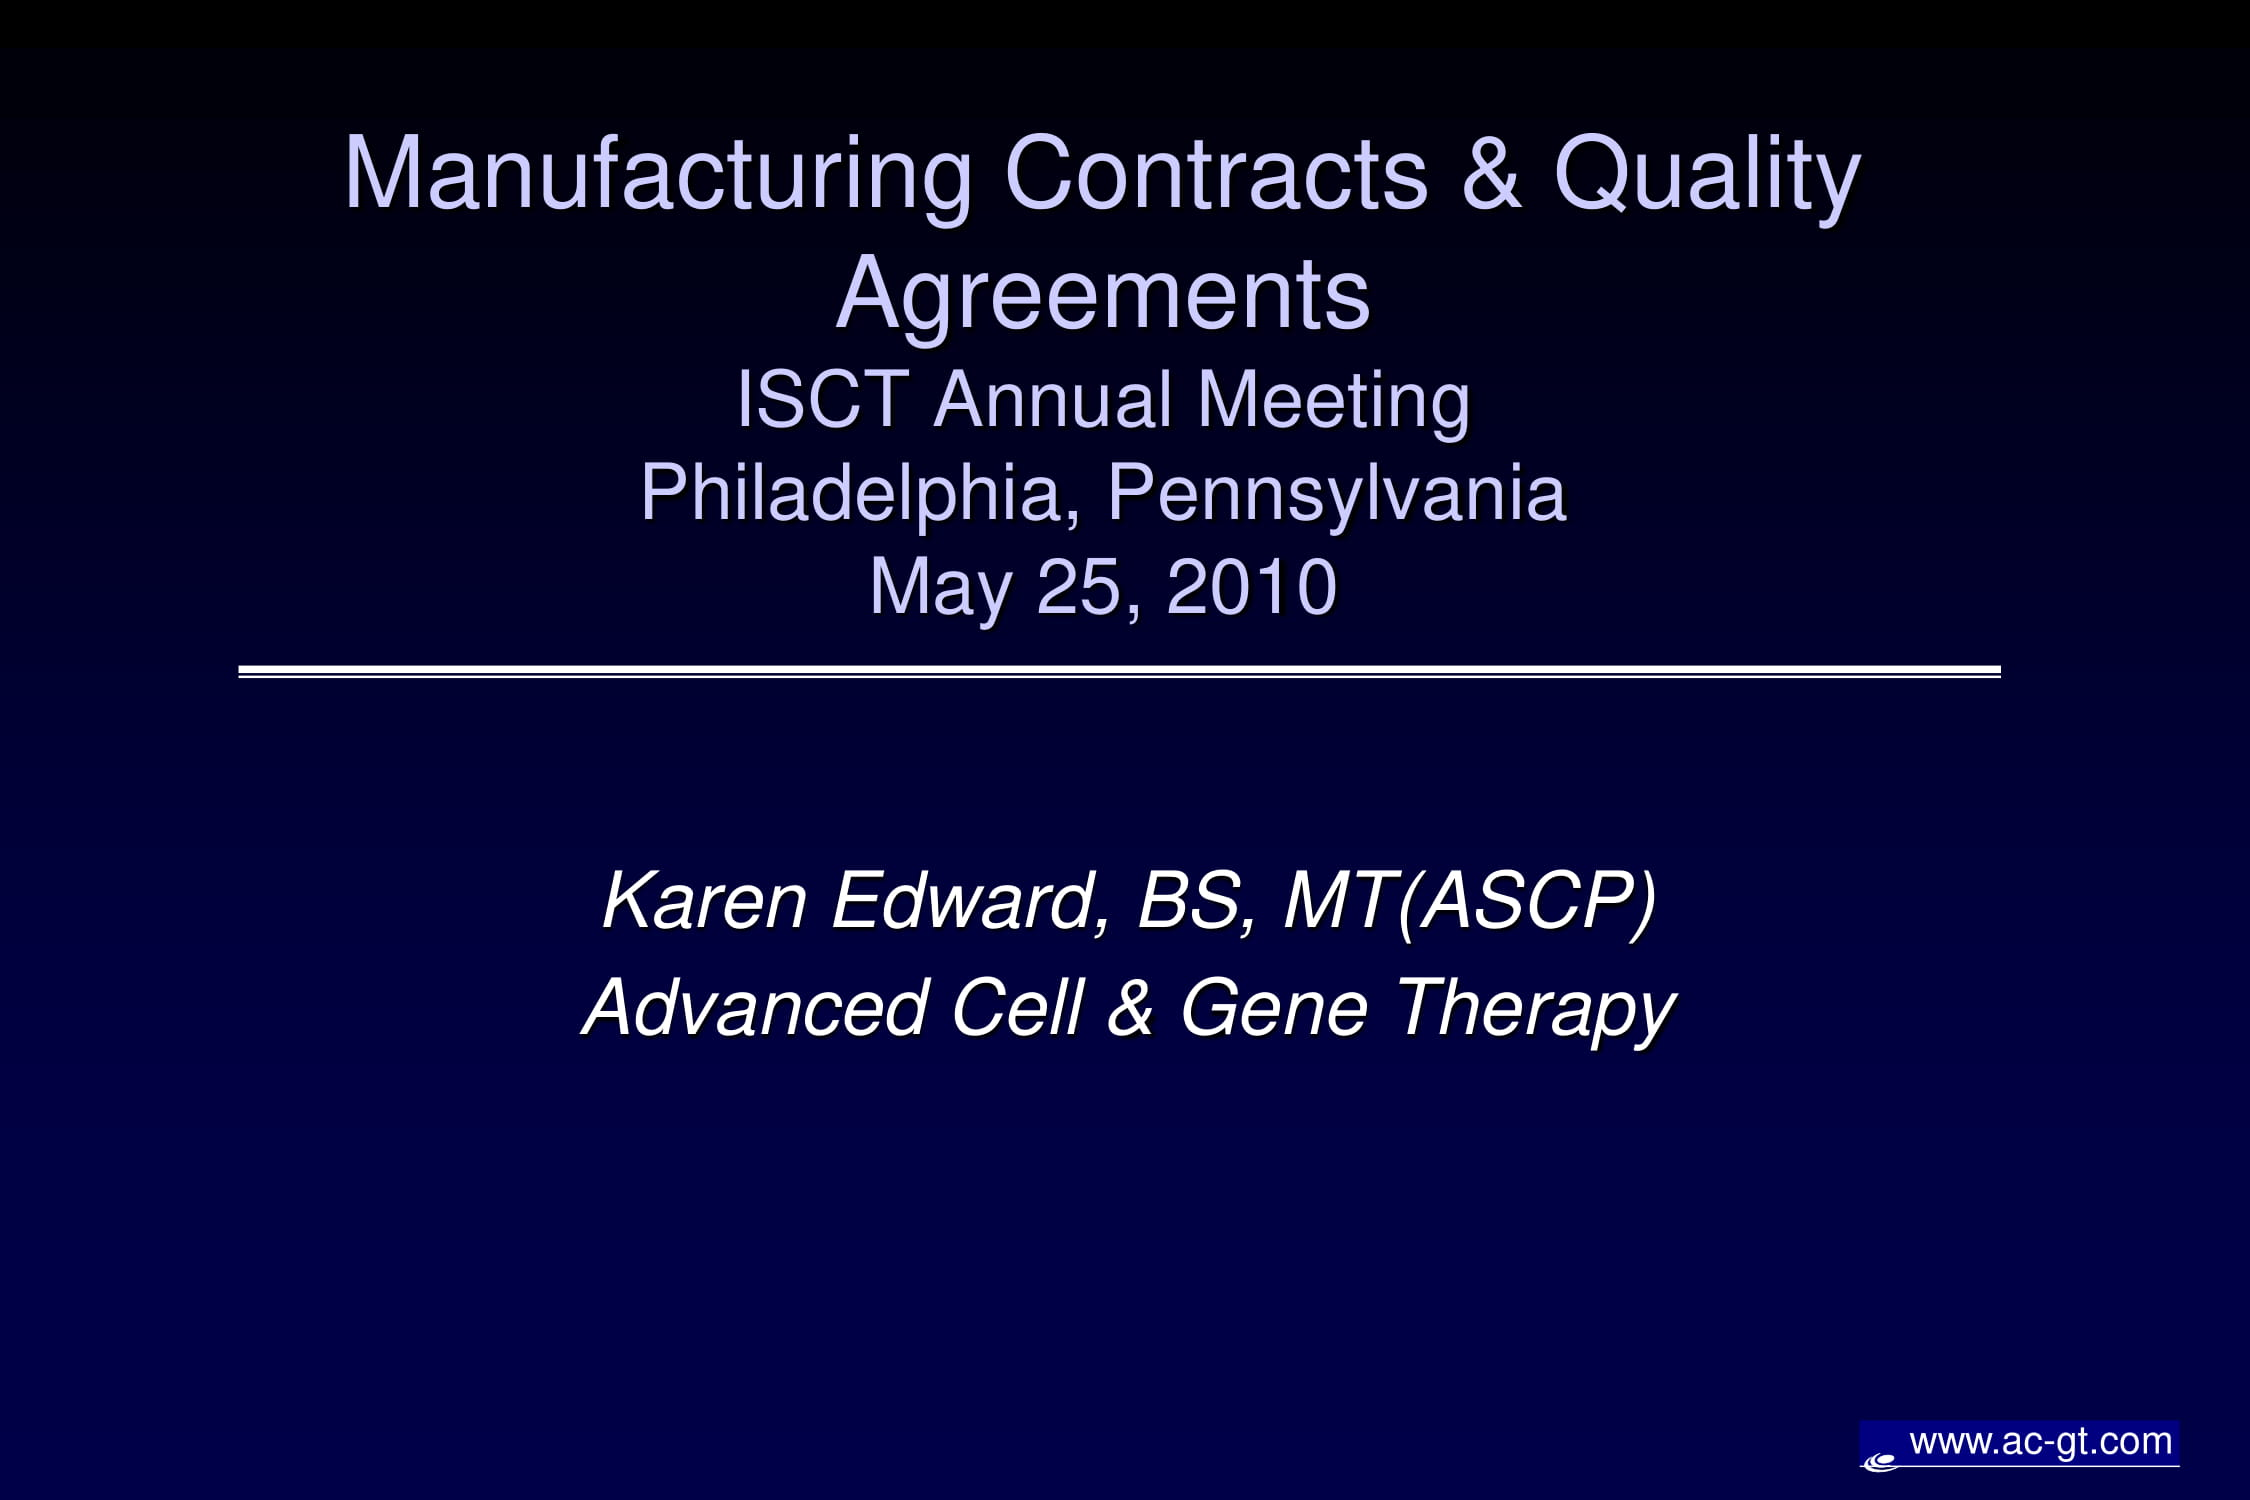 manufacturing contracts and quality agreements guidelines example 01